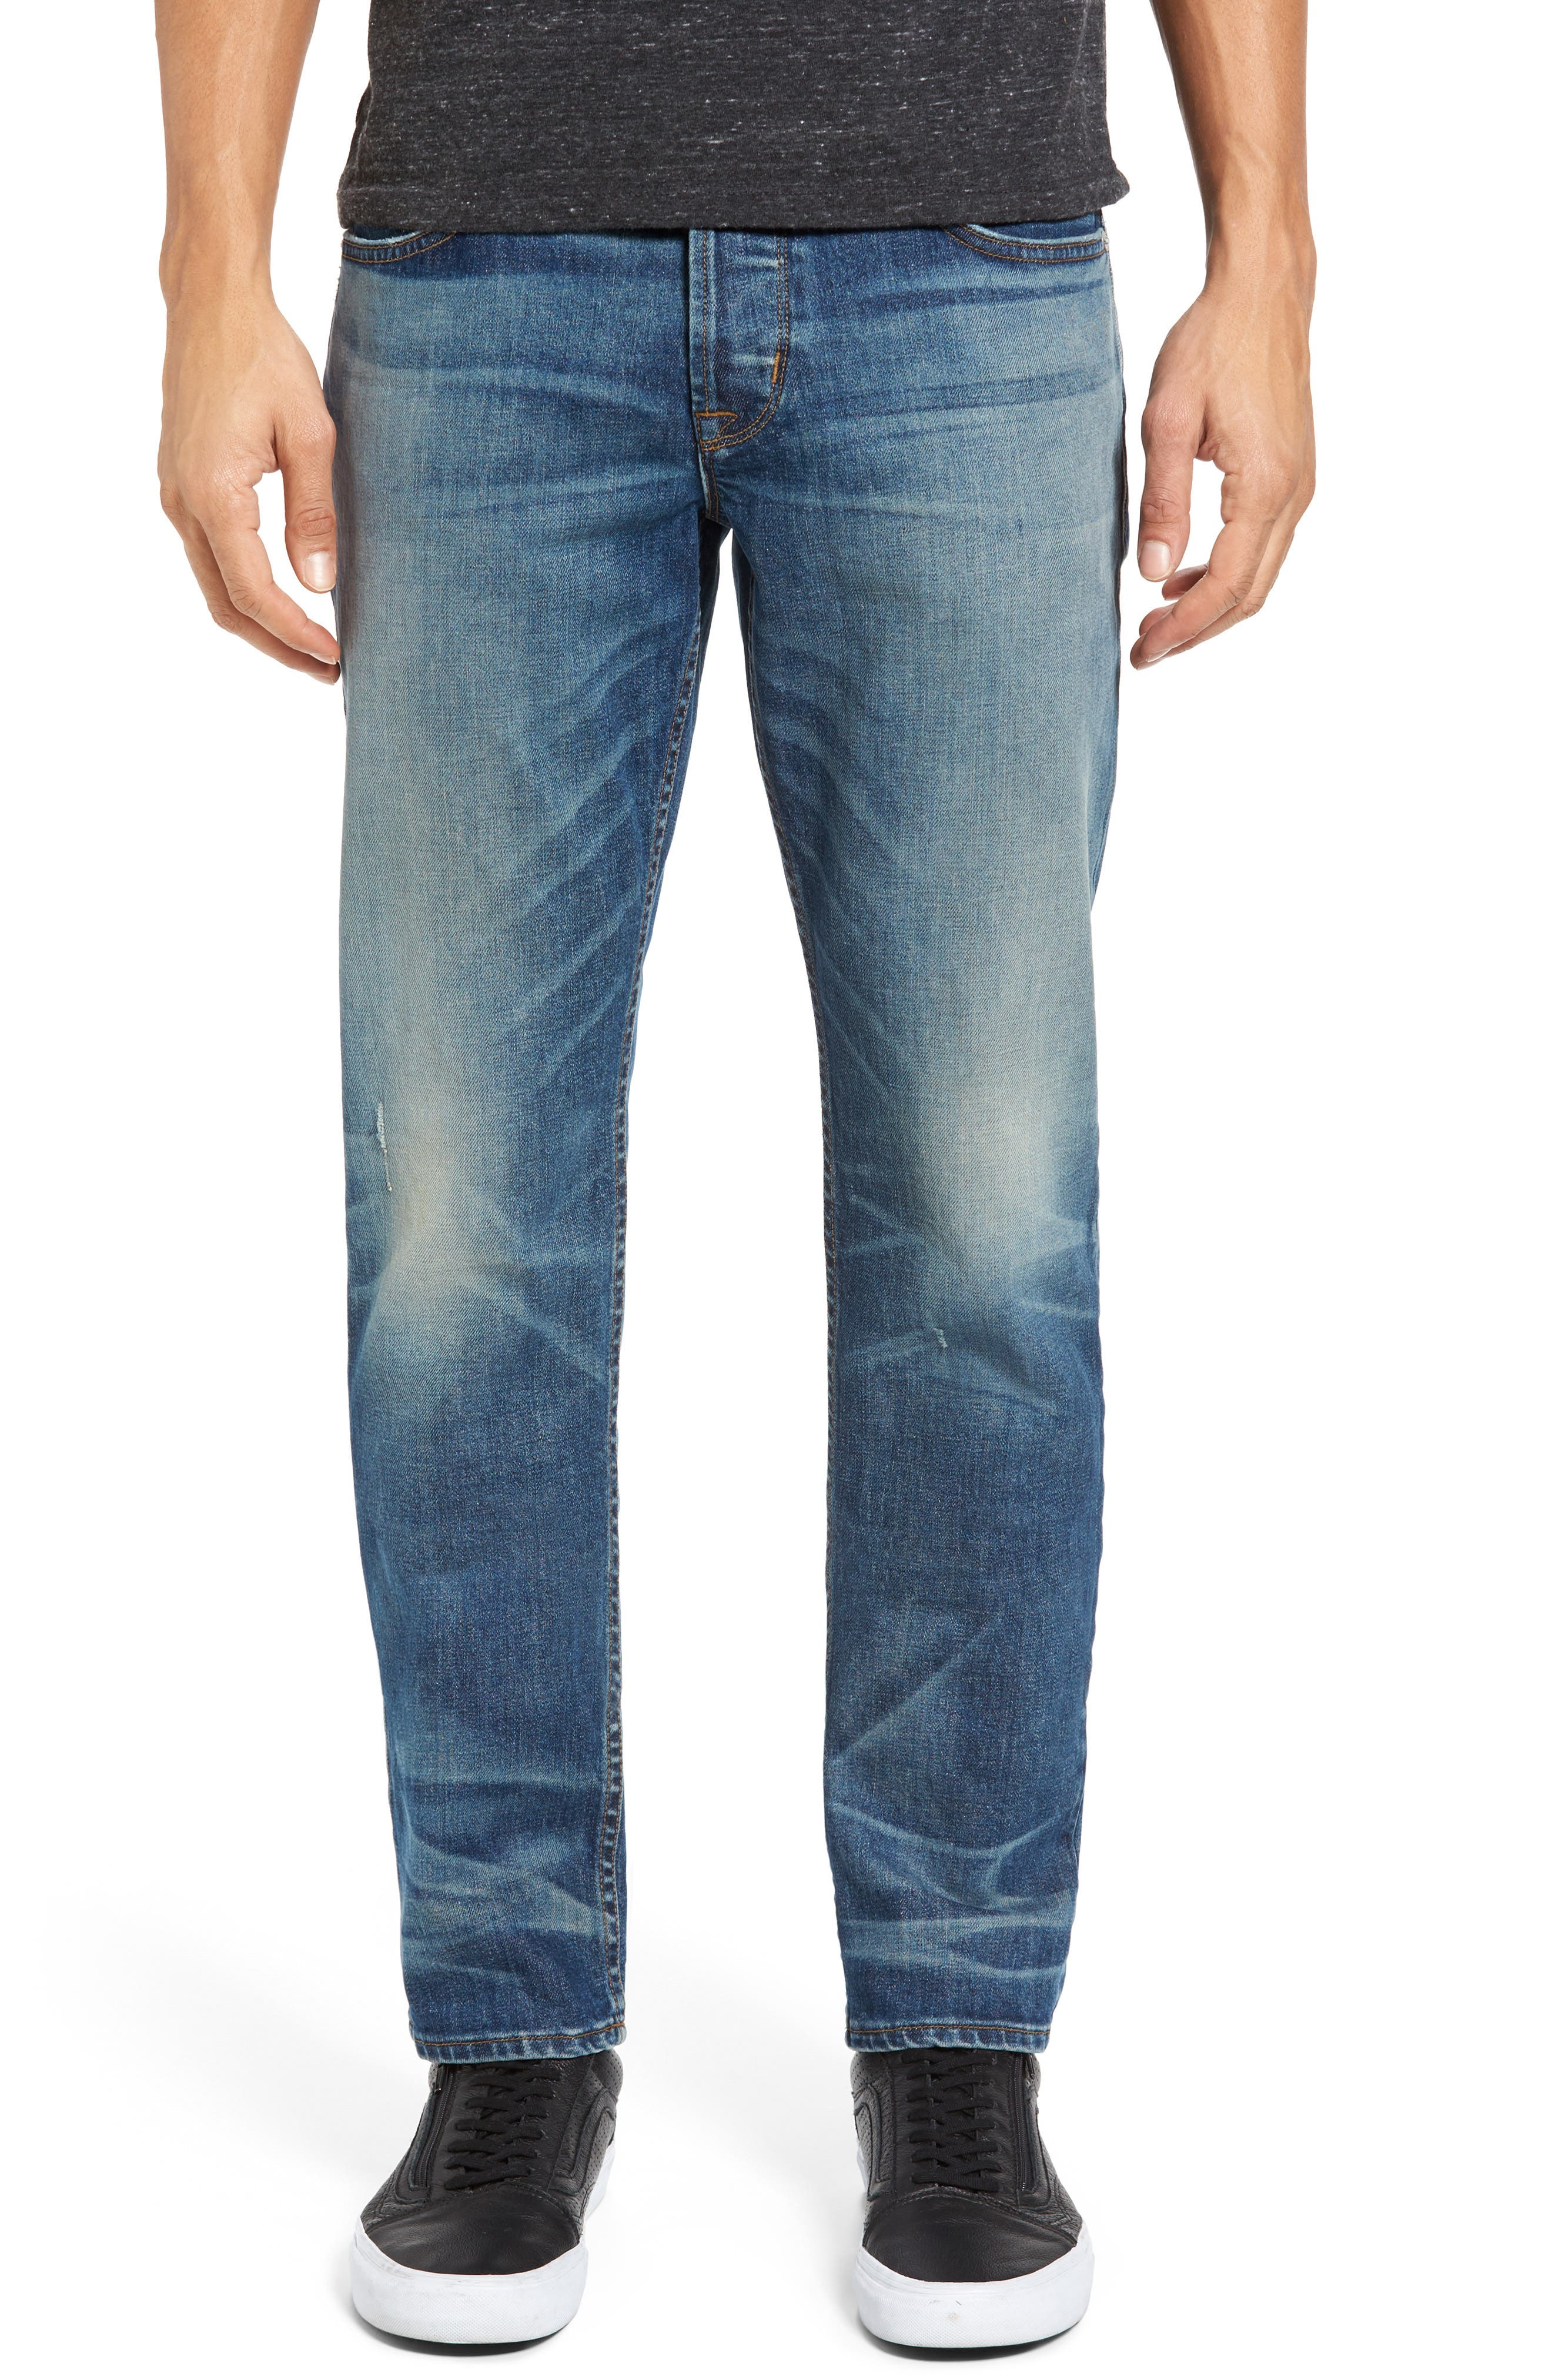 Main Image - Hudson Jeans Blake Slim Fit Jeans (Withstand)